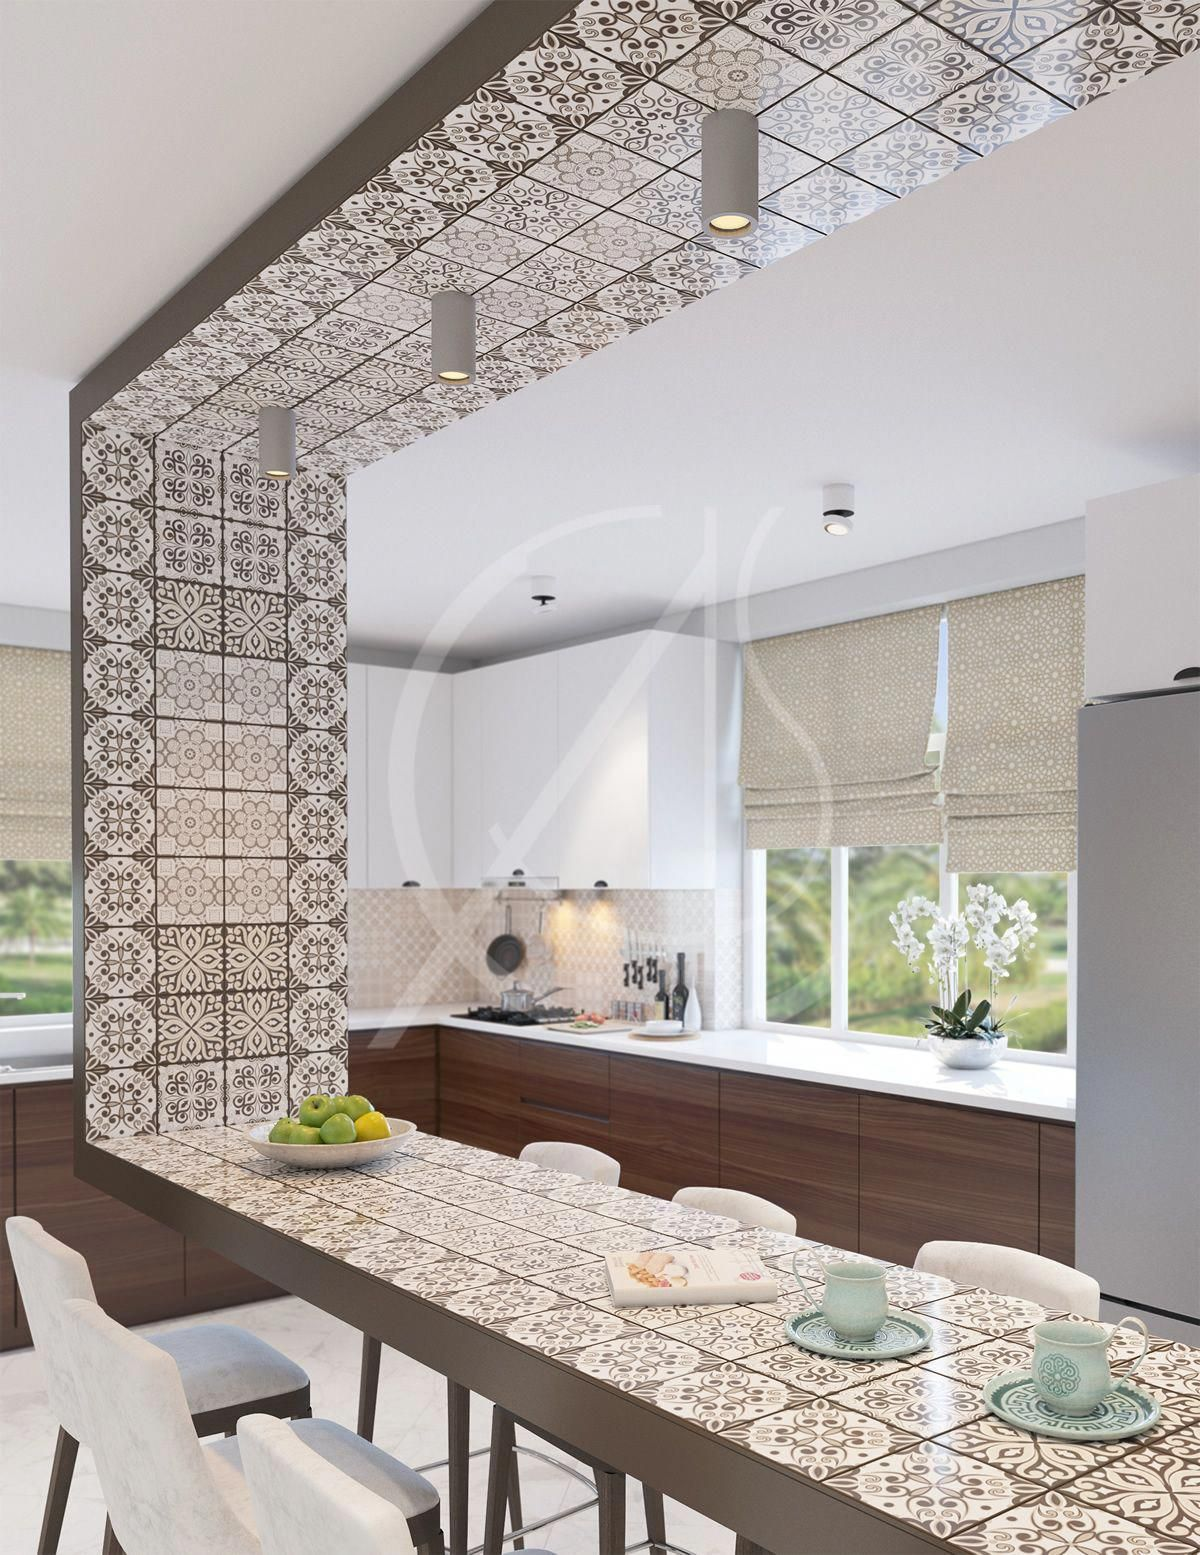 The Suspended Counter Is The Highlight Of The Kitchen In The Modern Islamic Home With Geometric Patterned Tiles That Contras Luxury Kitchen Designs In 2019